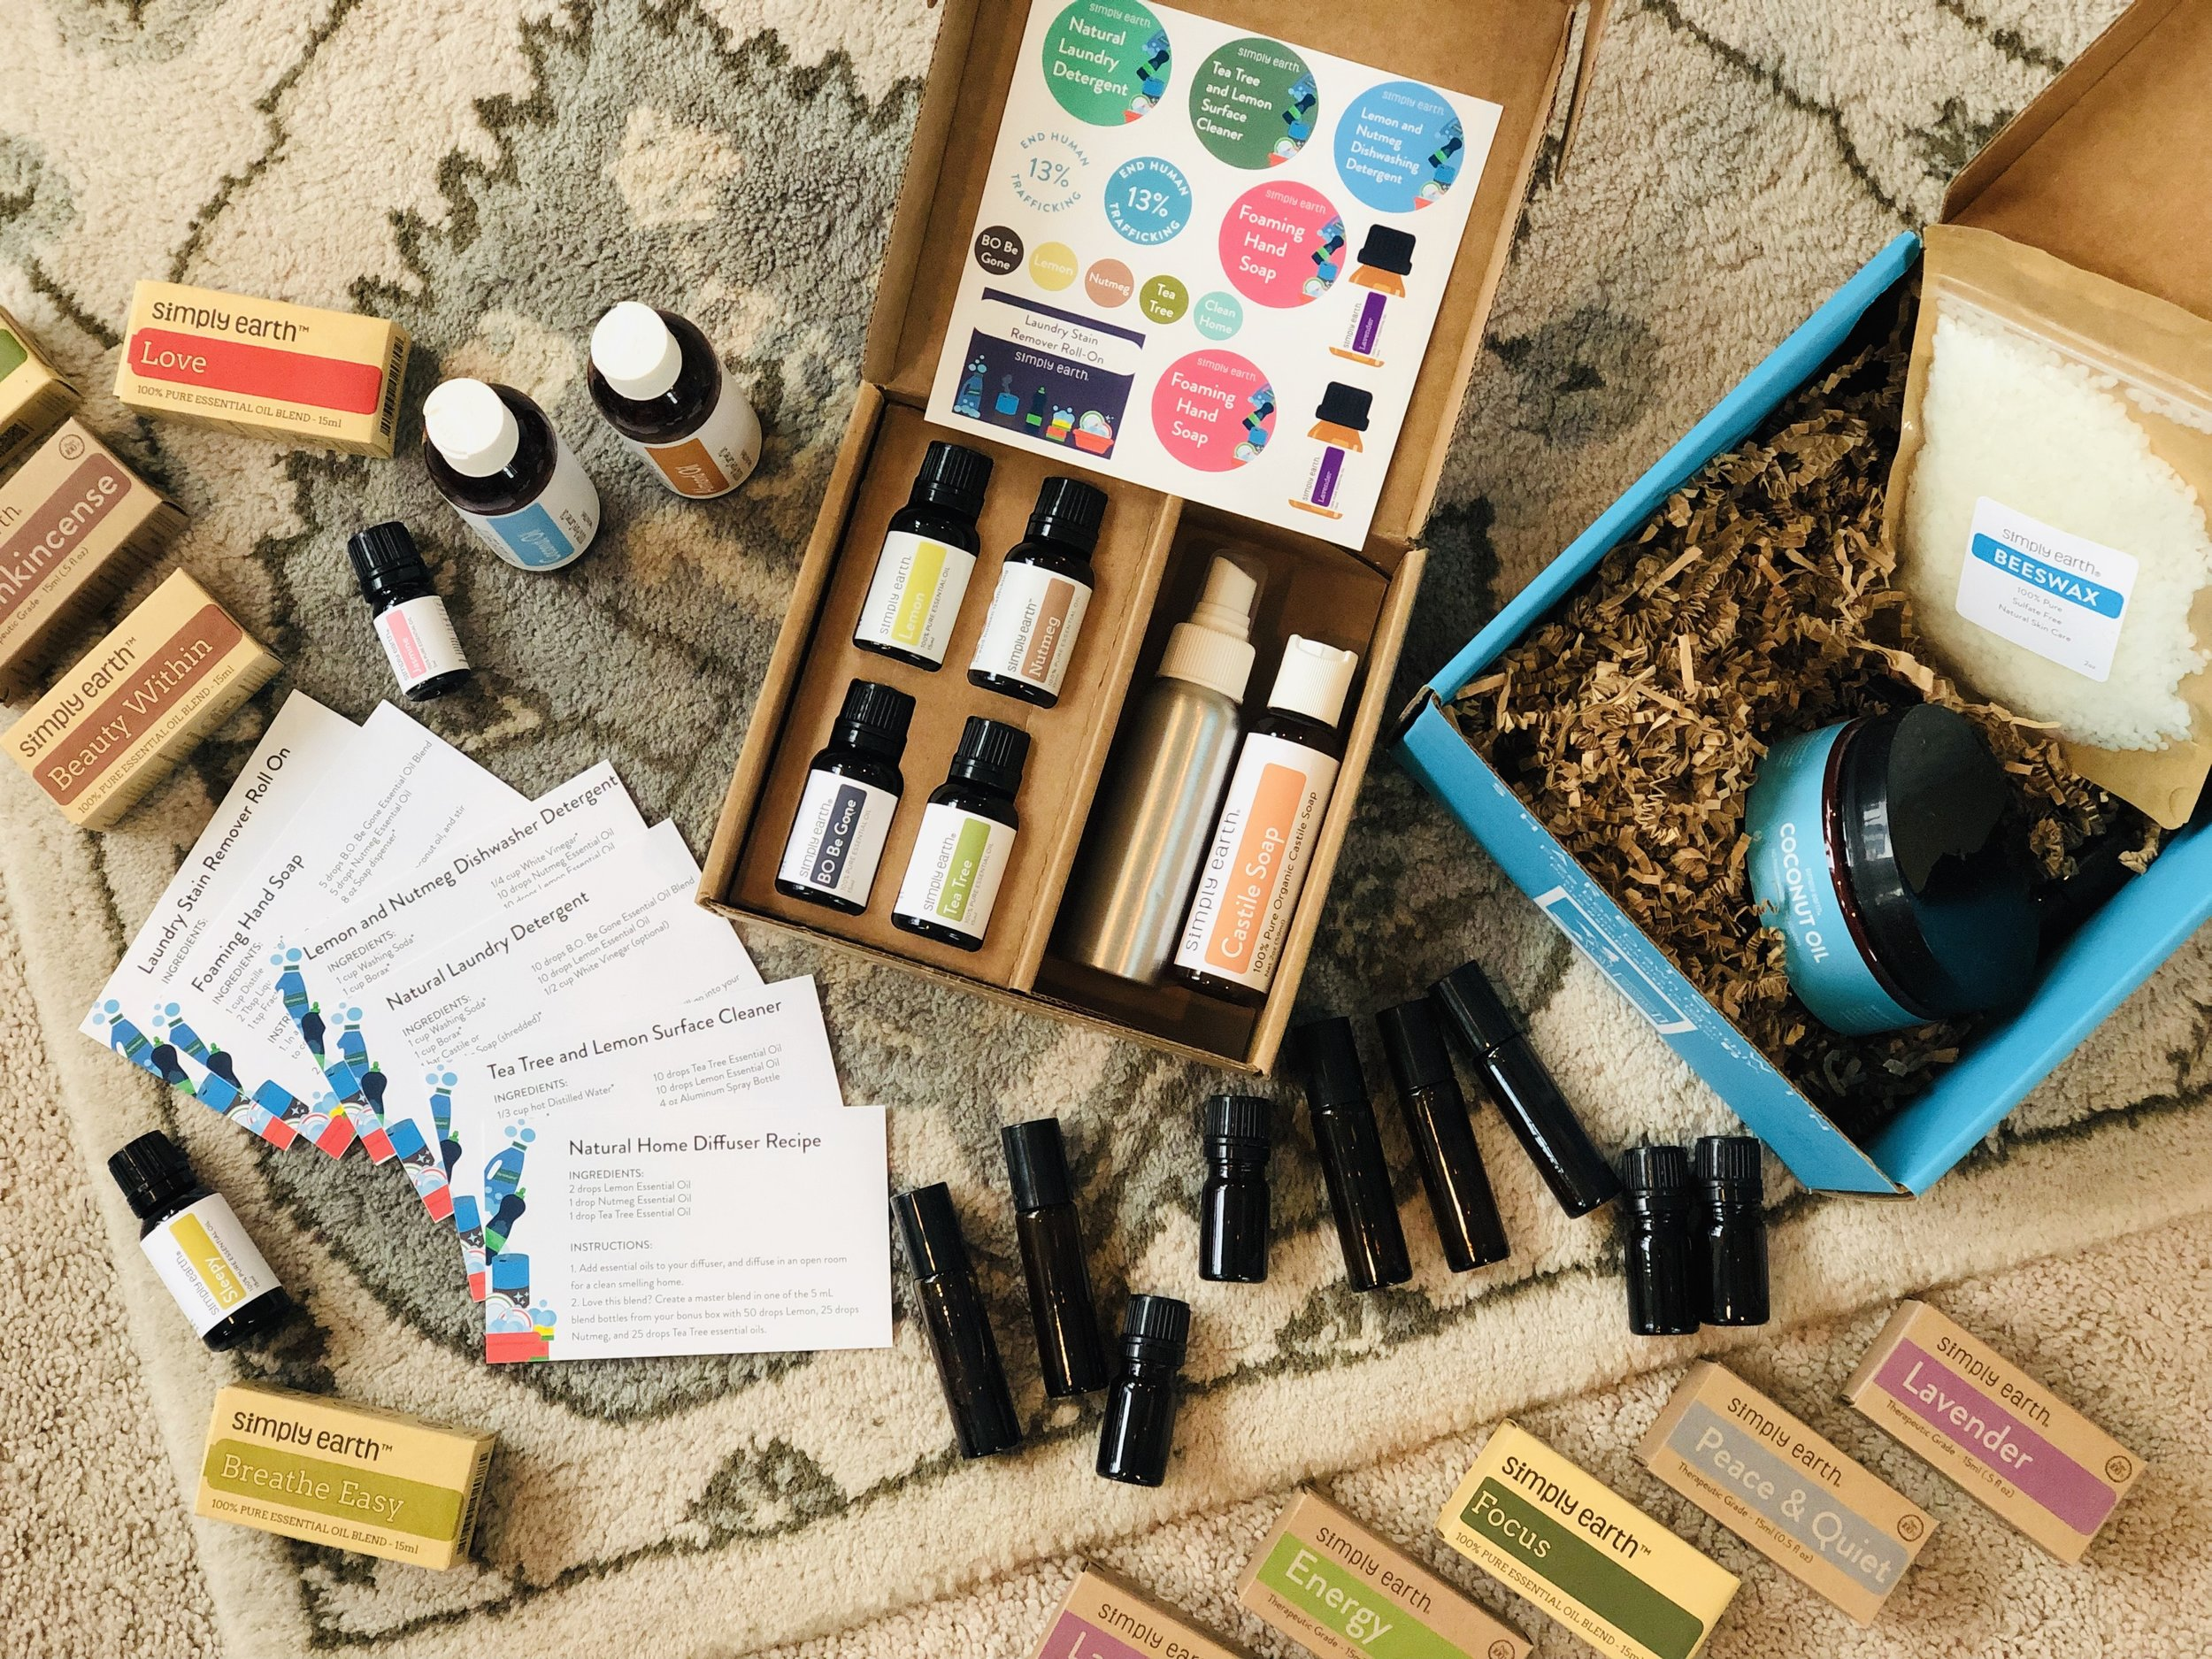 Love the idea of using essential oils but don't know where to start? We are sharing with you an incredible company who shows you how to make (and use!) all those recipes for oils you see Pinterest. So cool!